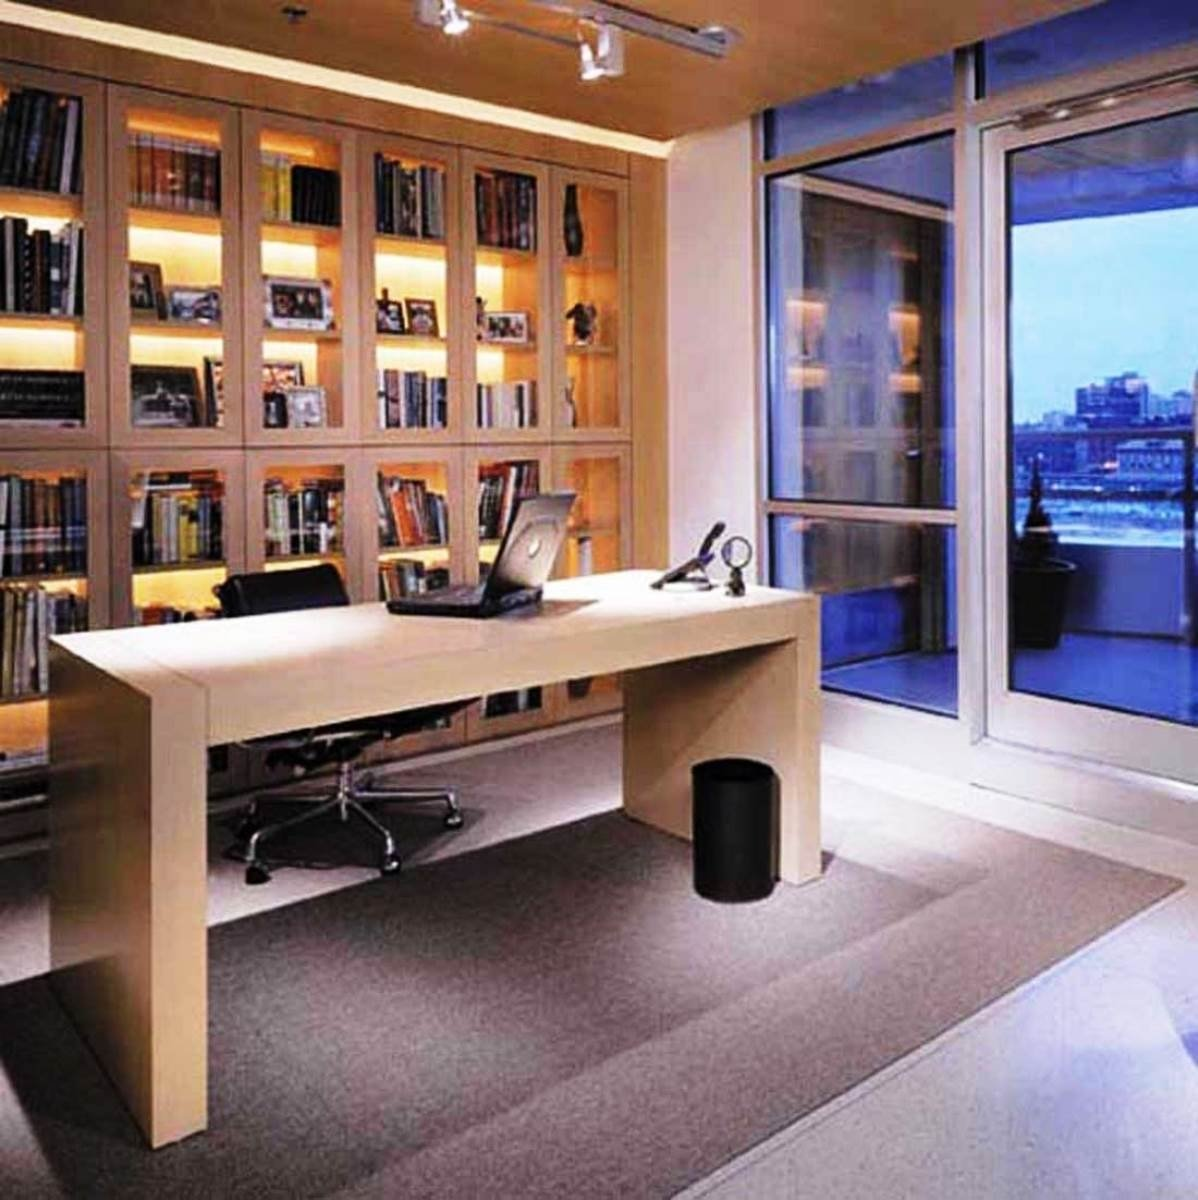 10 Lovely Work Office Decorating Ideas Pictures minimalist office decoration ideas amazing decorations plus work 1